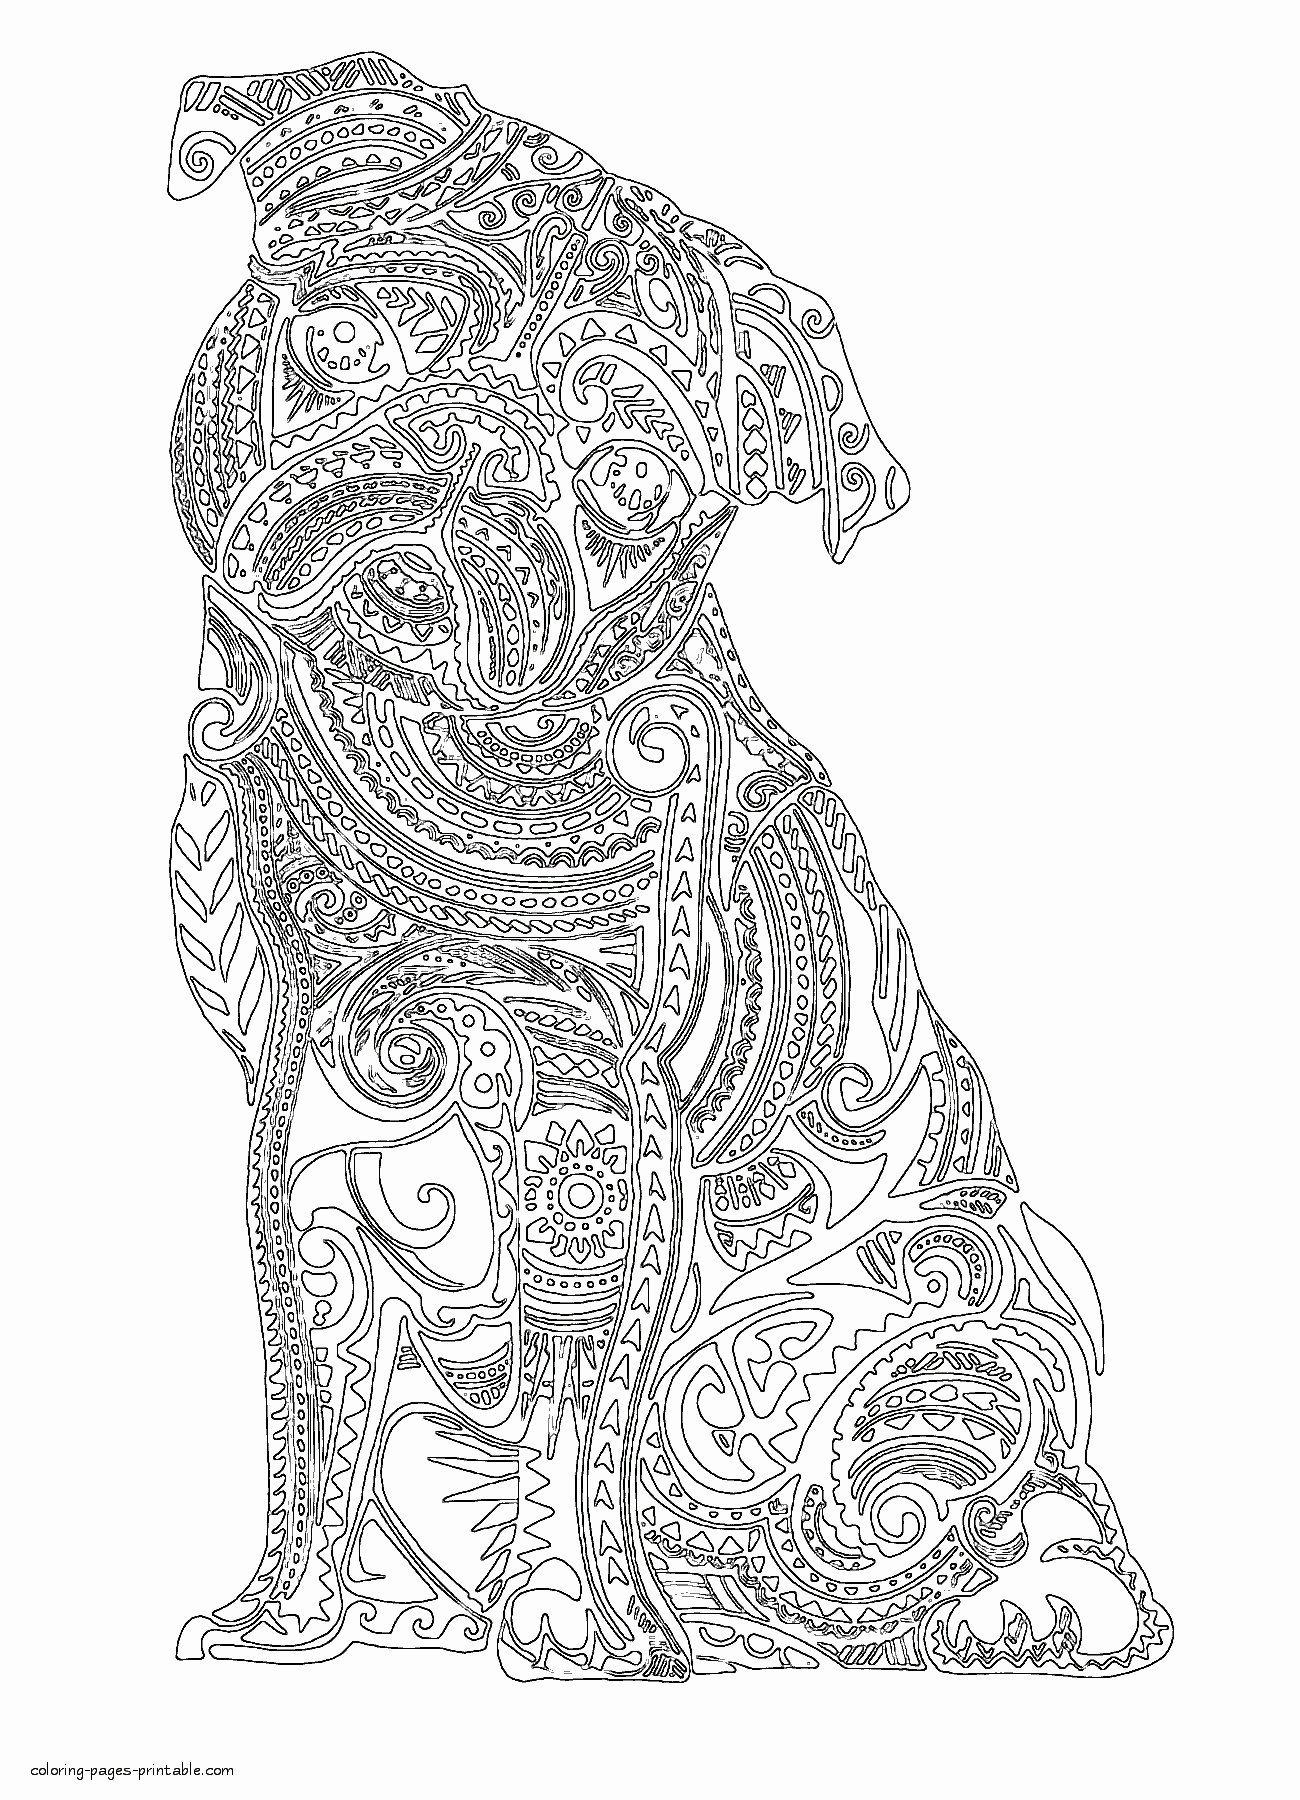 Animal Coloring Pages Lizards Inspirational 55 Marvelous Coloring Pages Hard Animals Doteh Animal Coloring Pages Animal Coloring Books Coloring Pages To Print